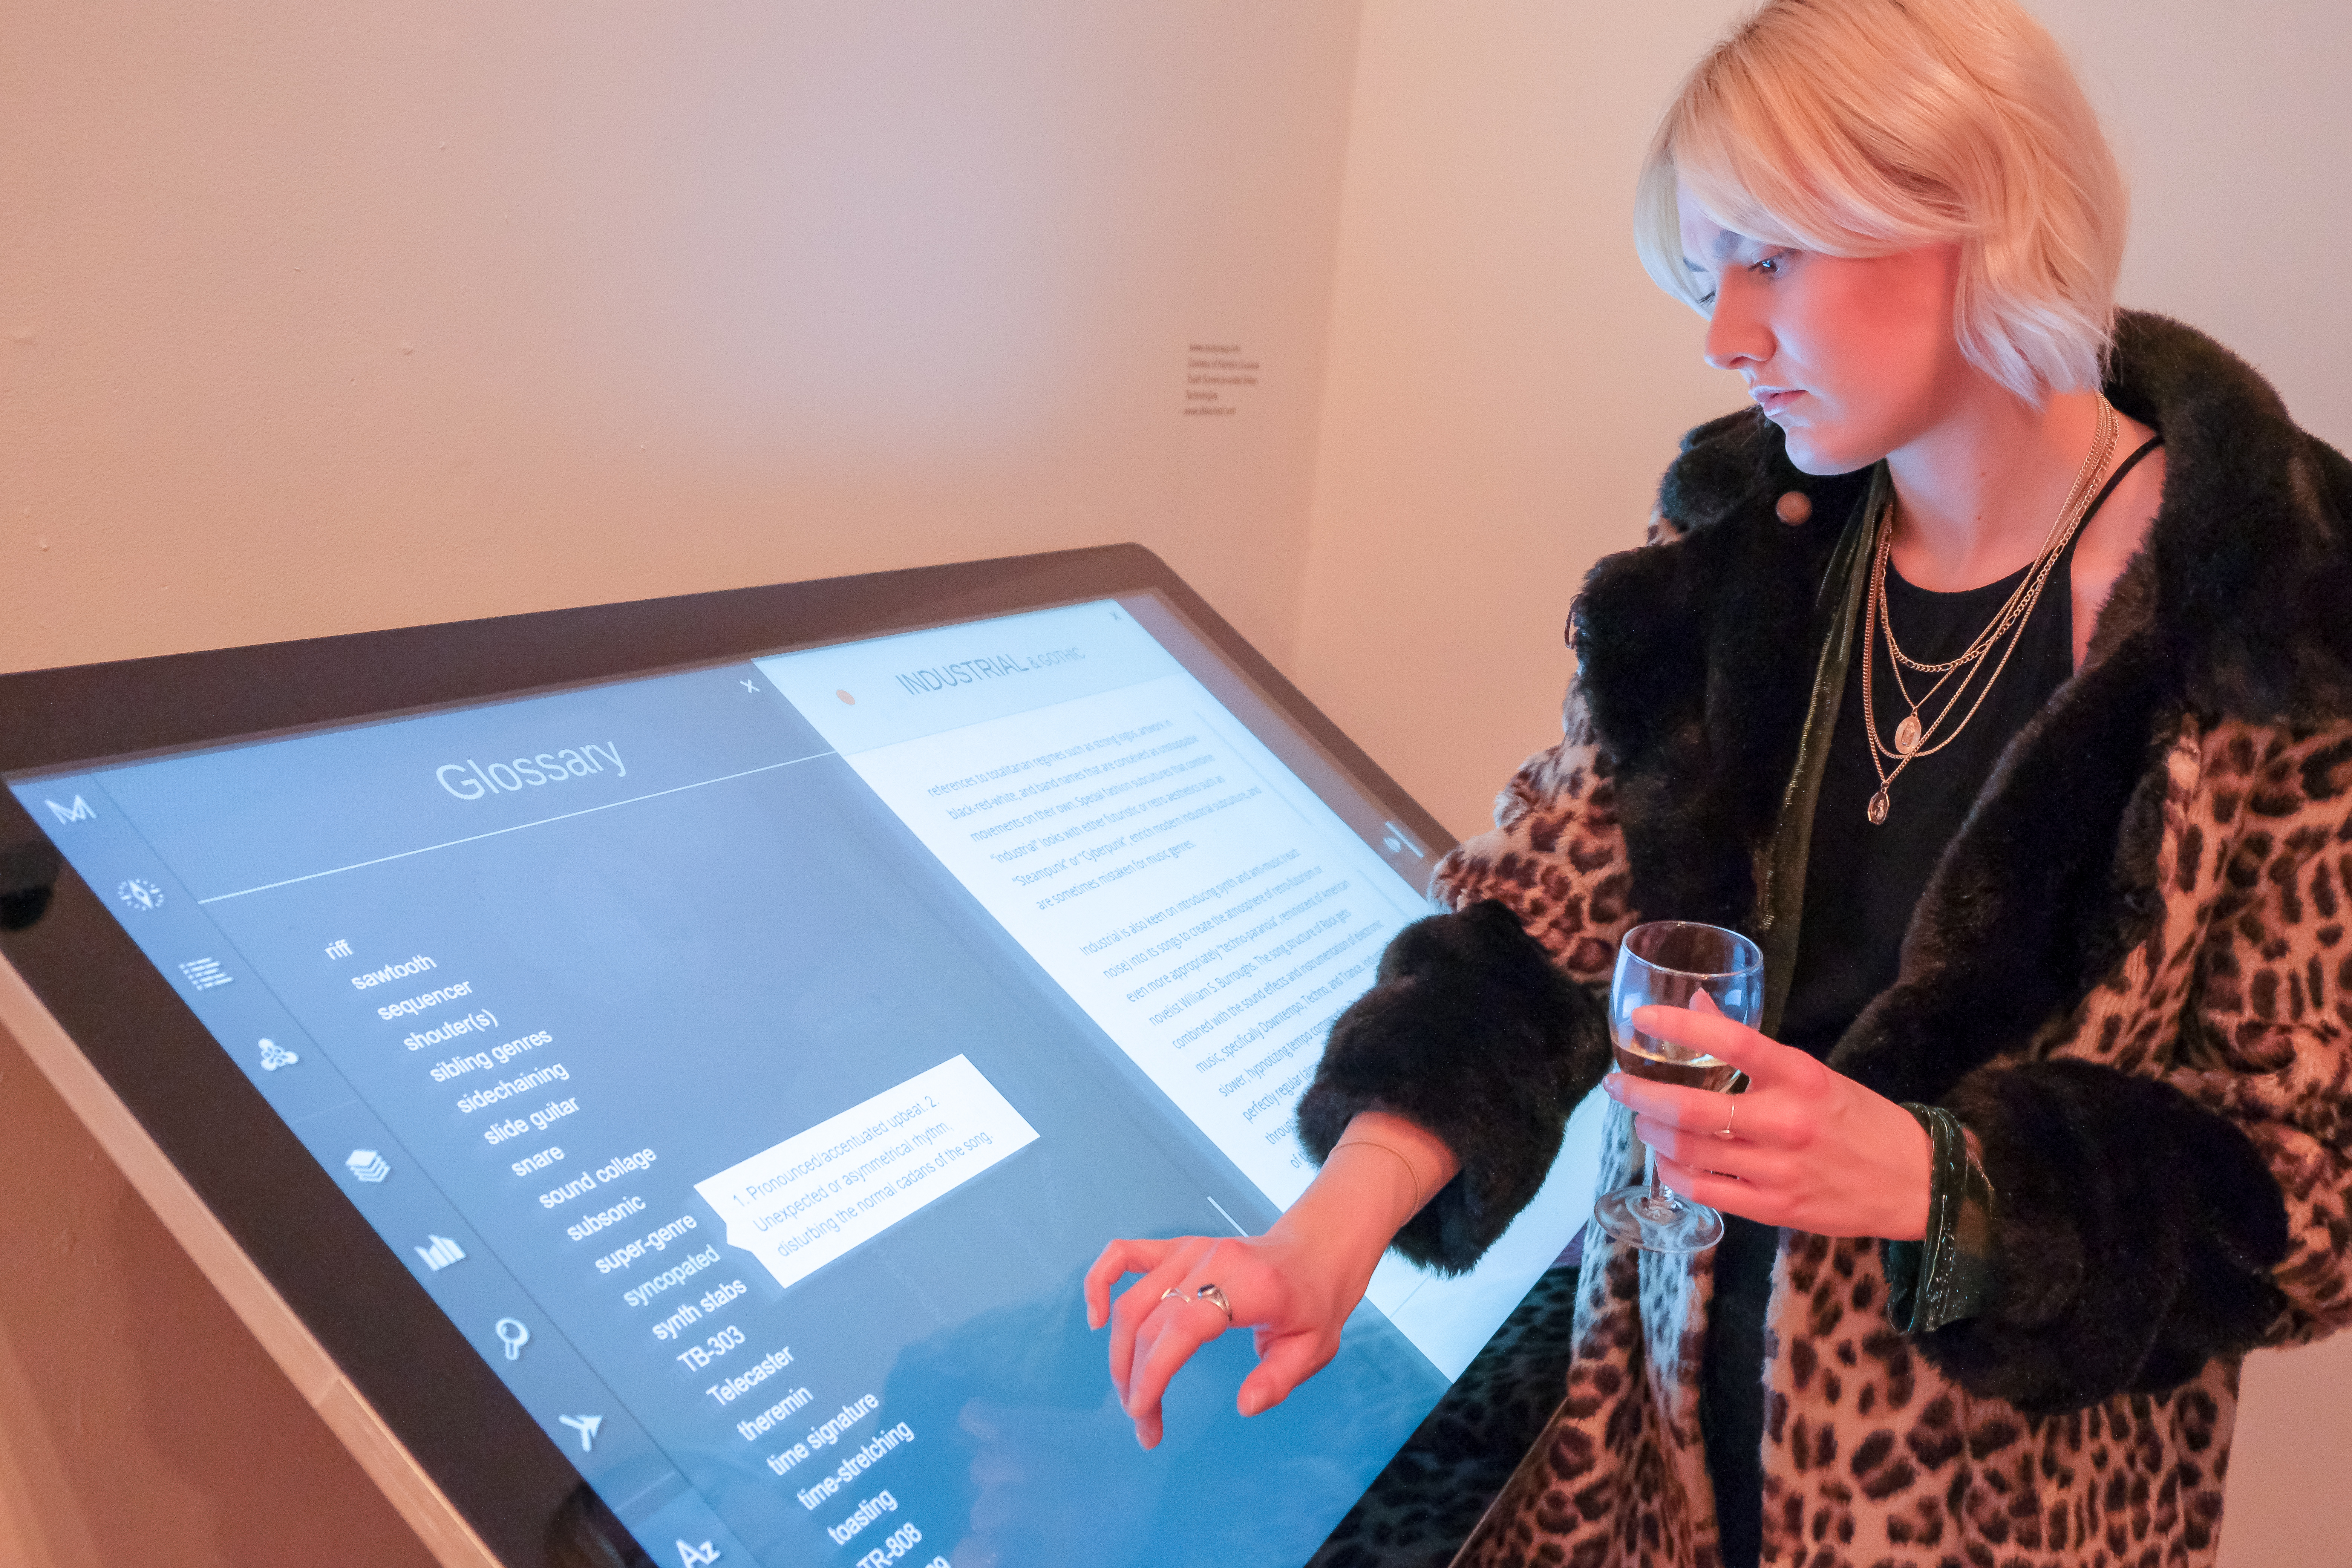 Exhibition visitor using PCAP Touch Screen Kiosk